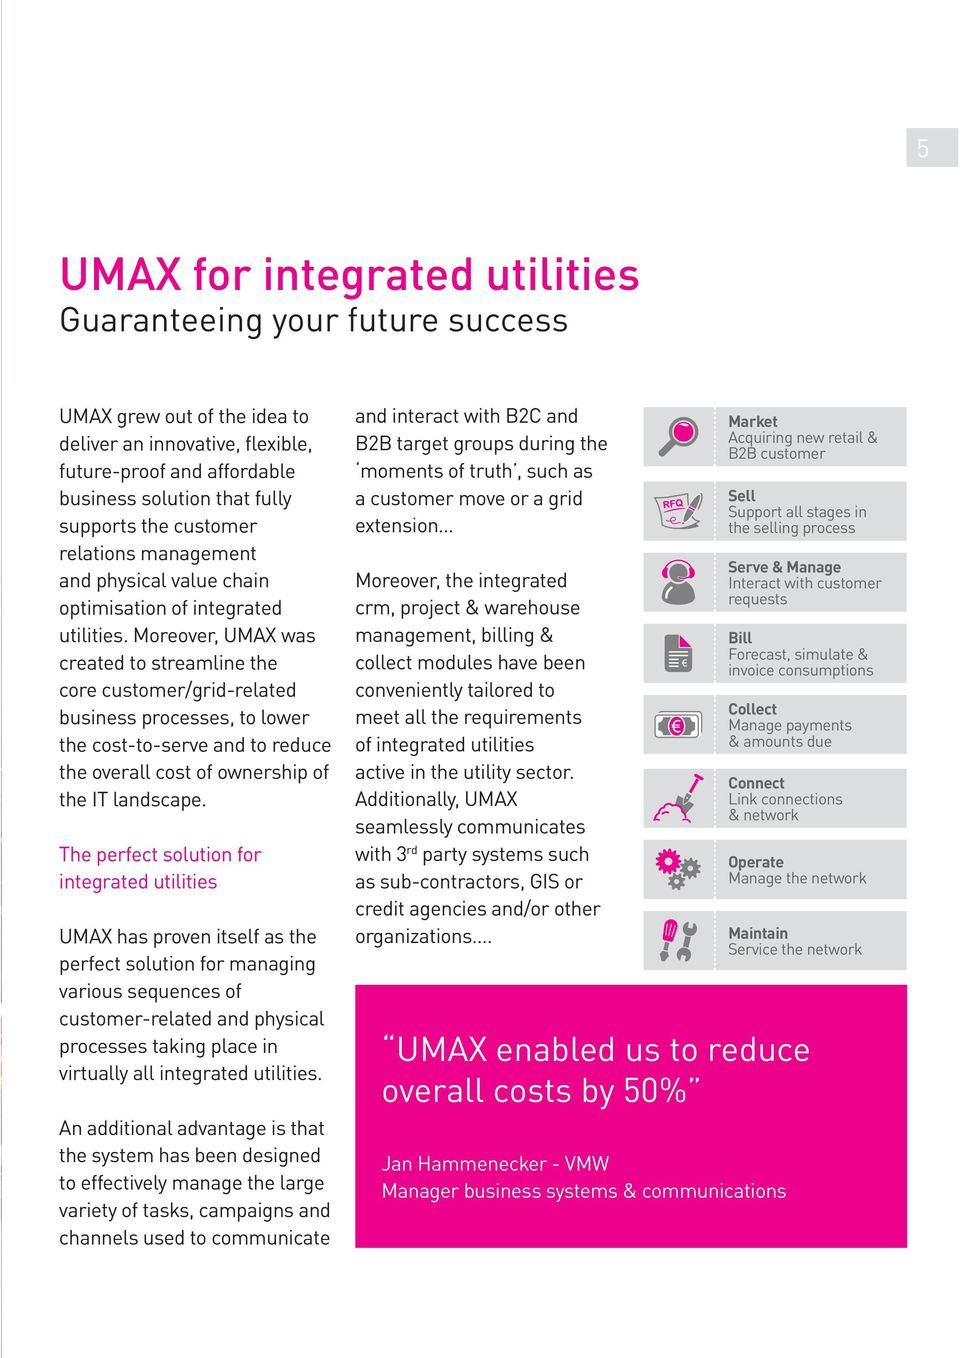 Moreover, UMAX was created to streamline the core customer/grid-related business processes, to lower the cost-to-serve and to reduce the overall cost of ownership of the IT landscape.